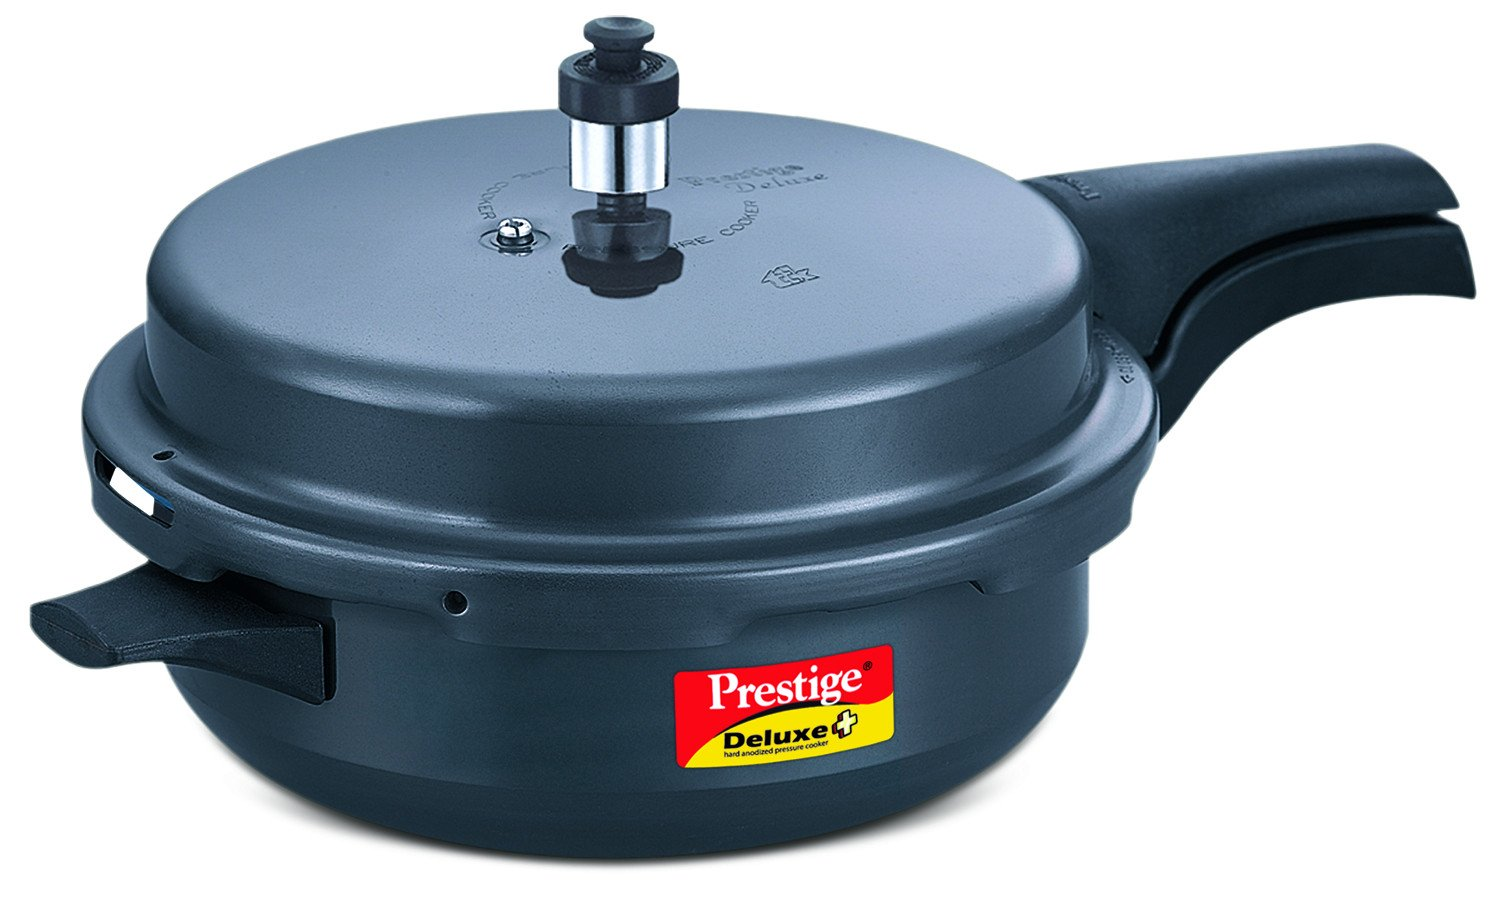 Prestige PRHASP Hard Anodised Senior Pan Pressure Cooker